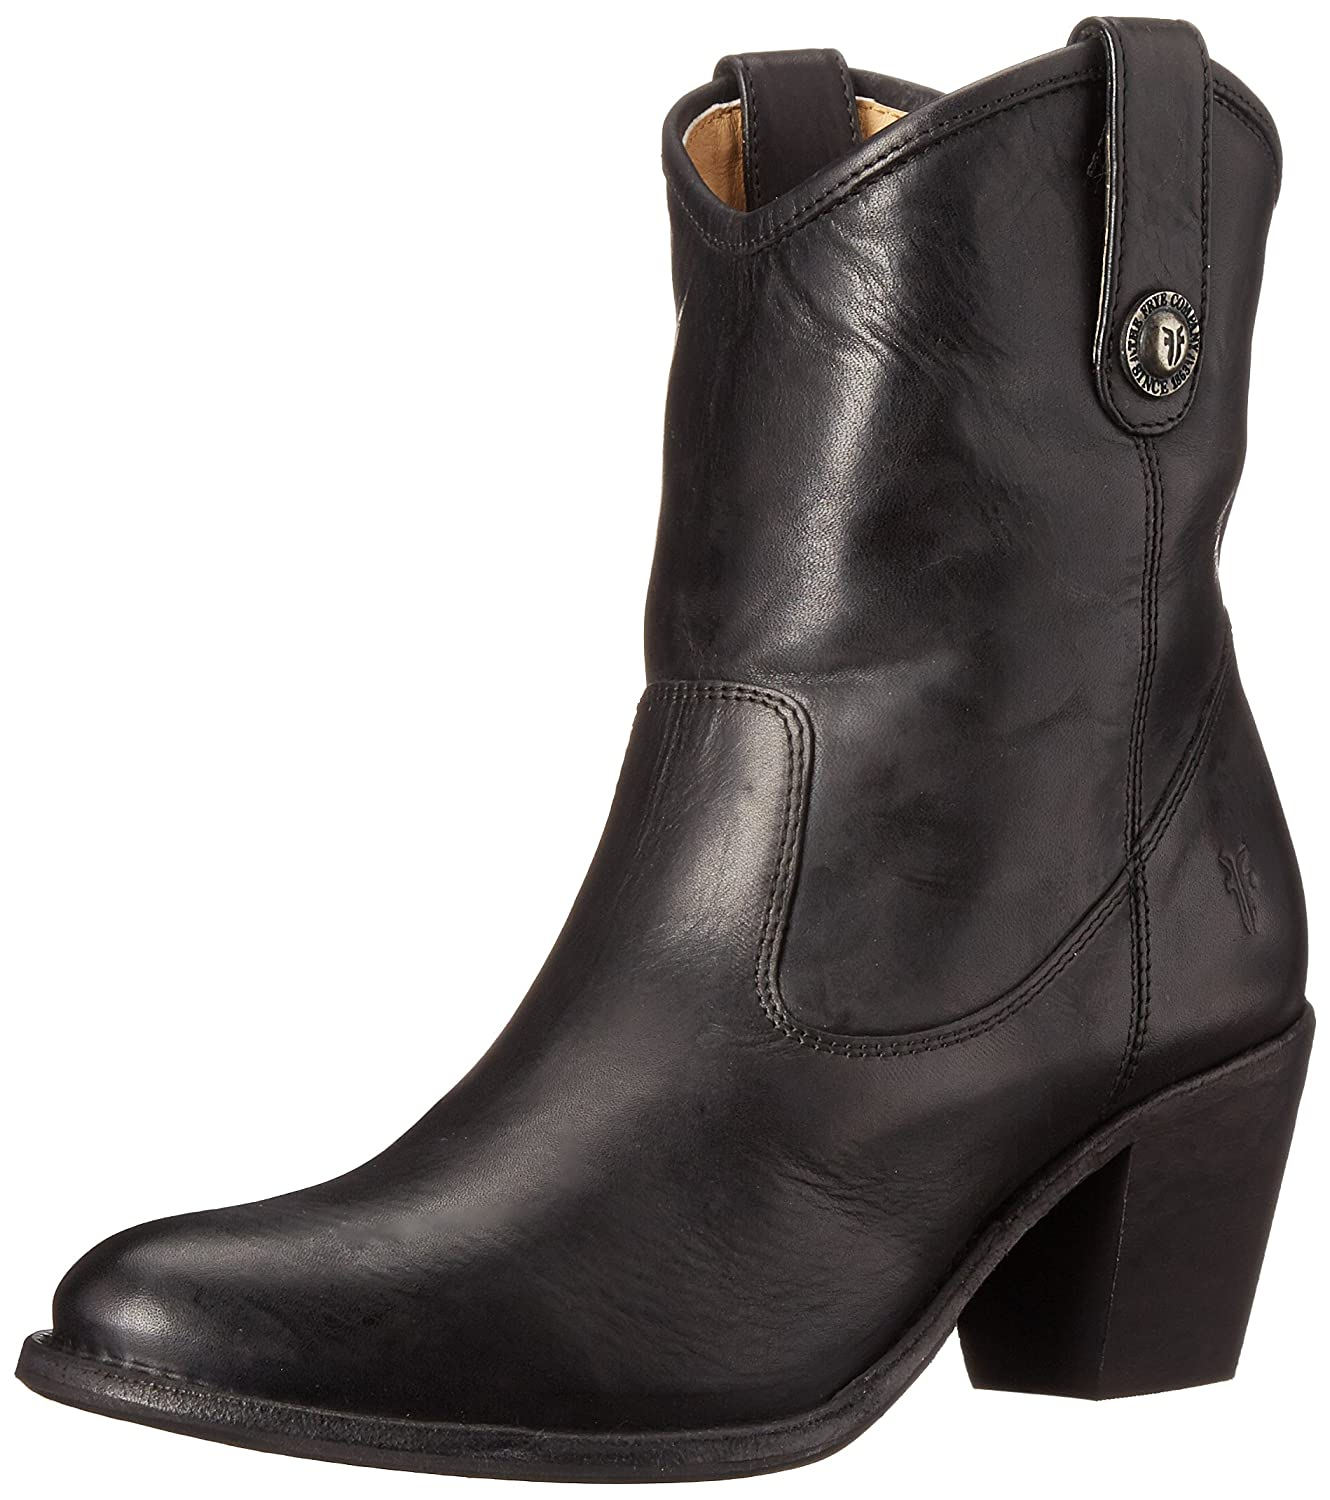 FRYE Women's Jackie Button Short Boot B00TPULGWW 5.5 B(M) US|Black - Washed Antique Pull Up Leather-76593